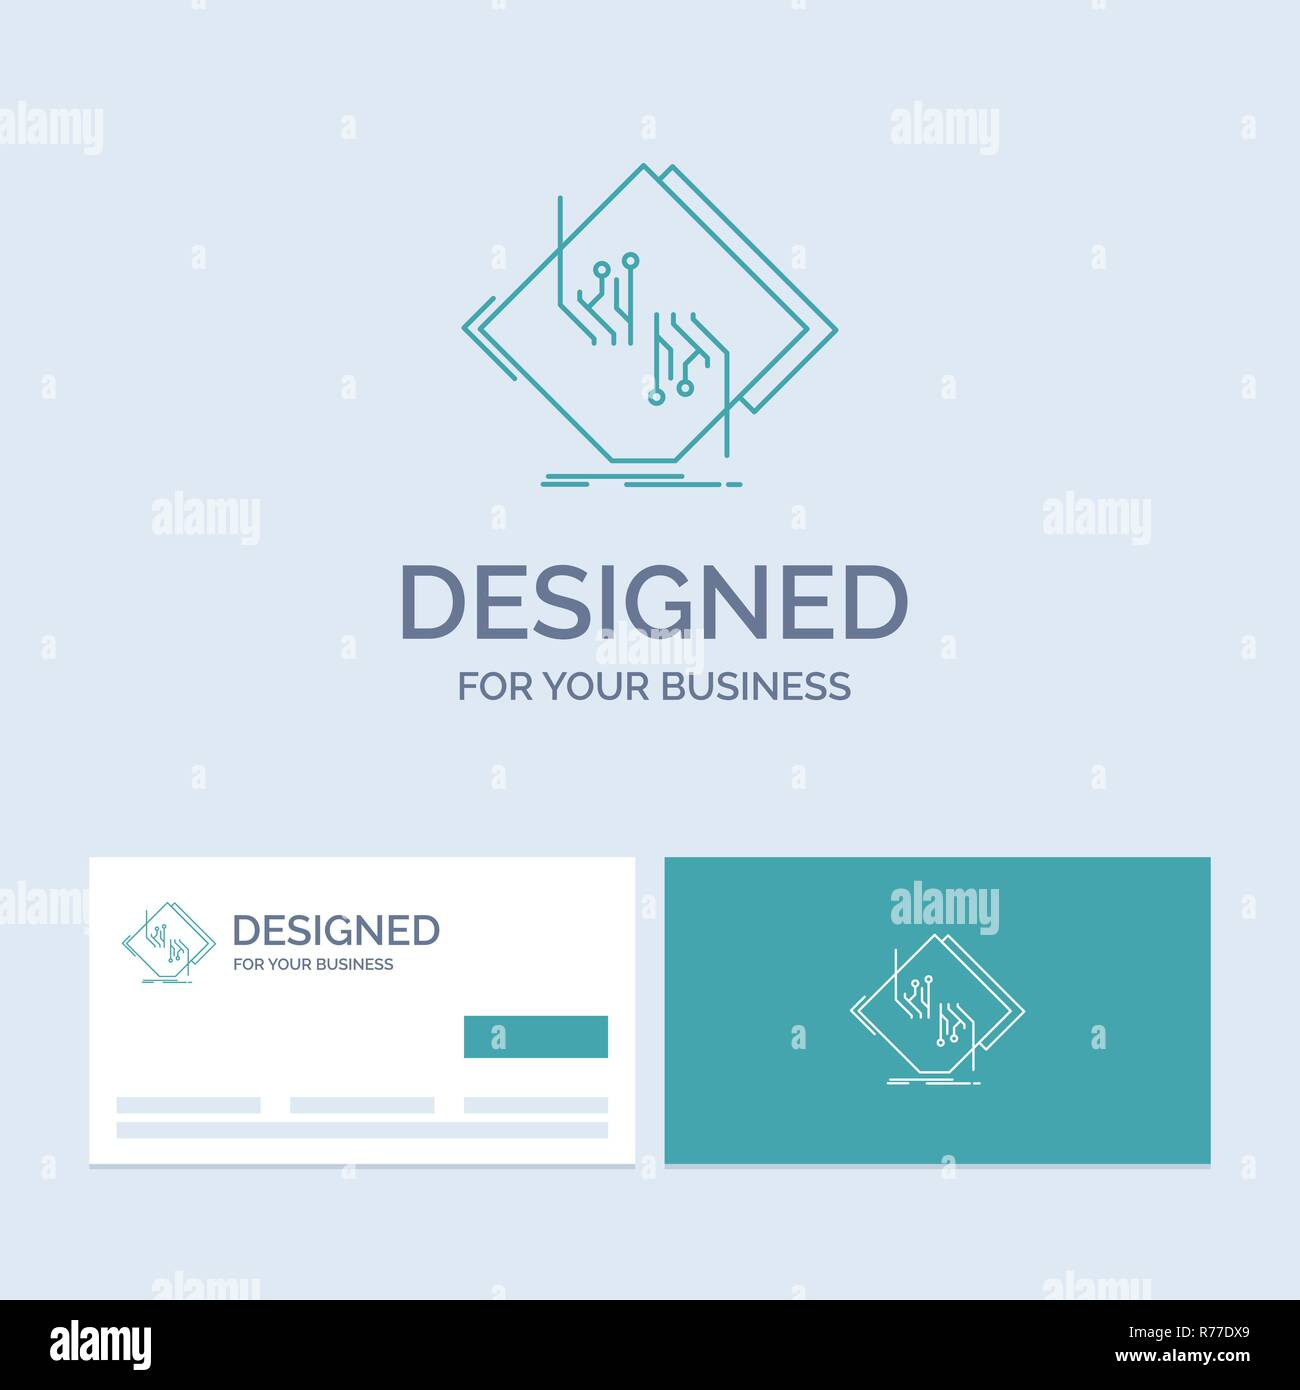 Board, chip, circuit, network, electronic Business Logo Line Icon Symbol for your business. Turquoise Business Cards with Brand logo template - Stock Image